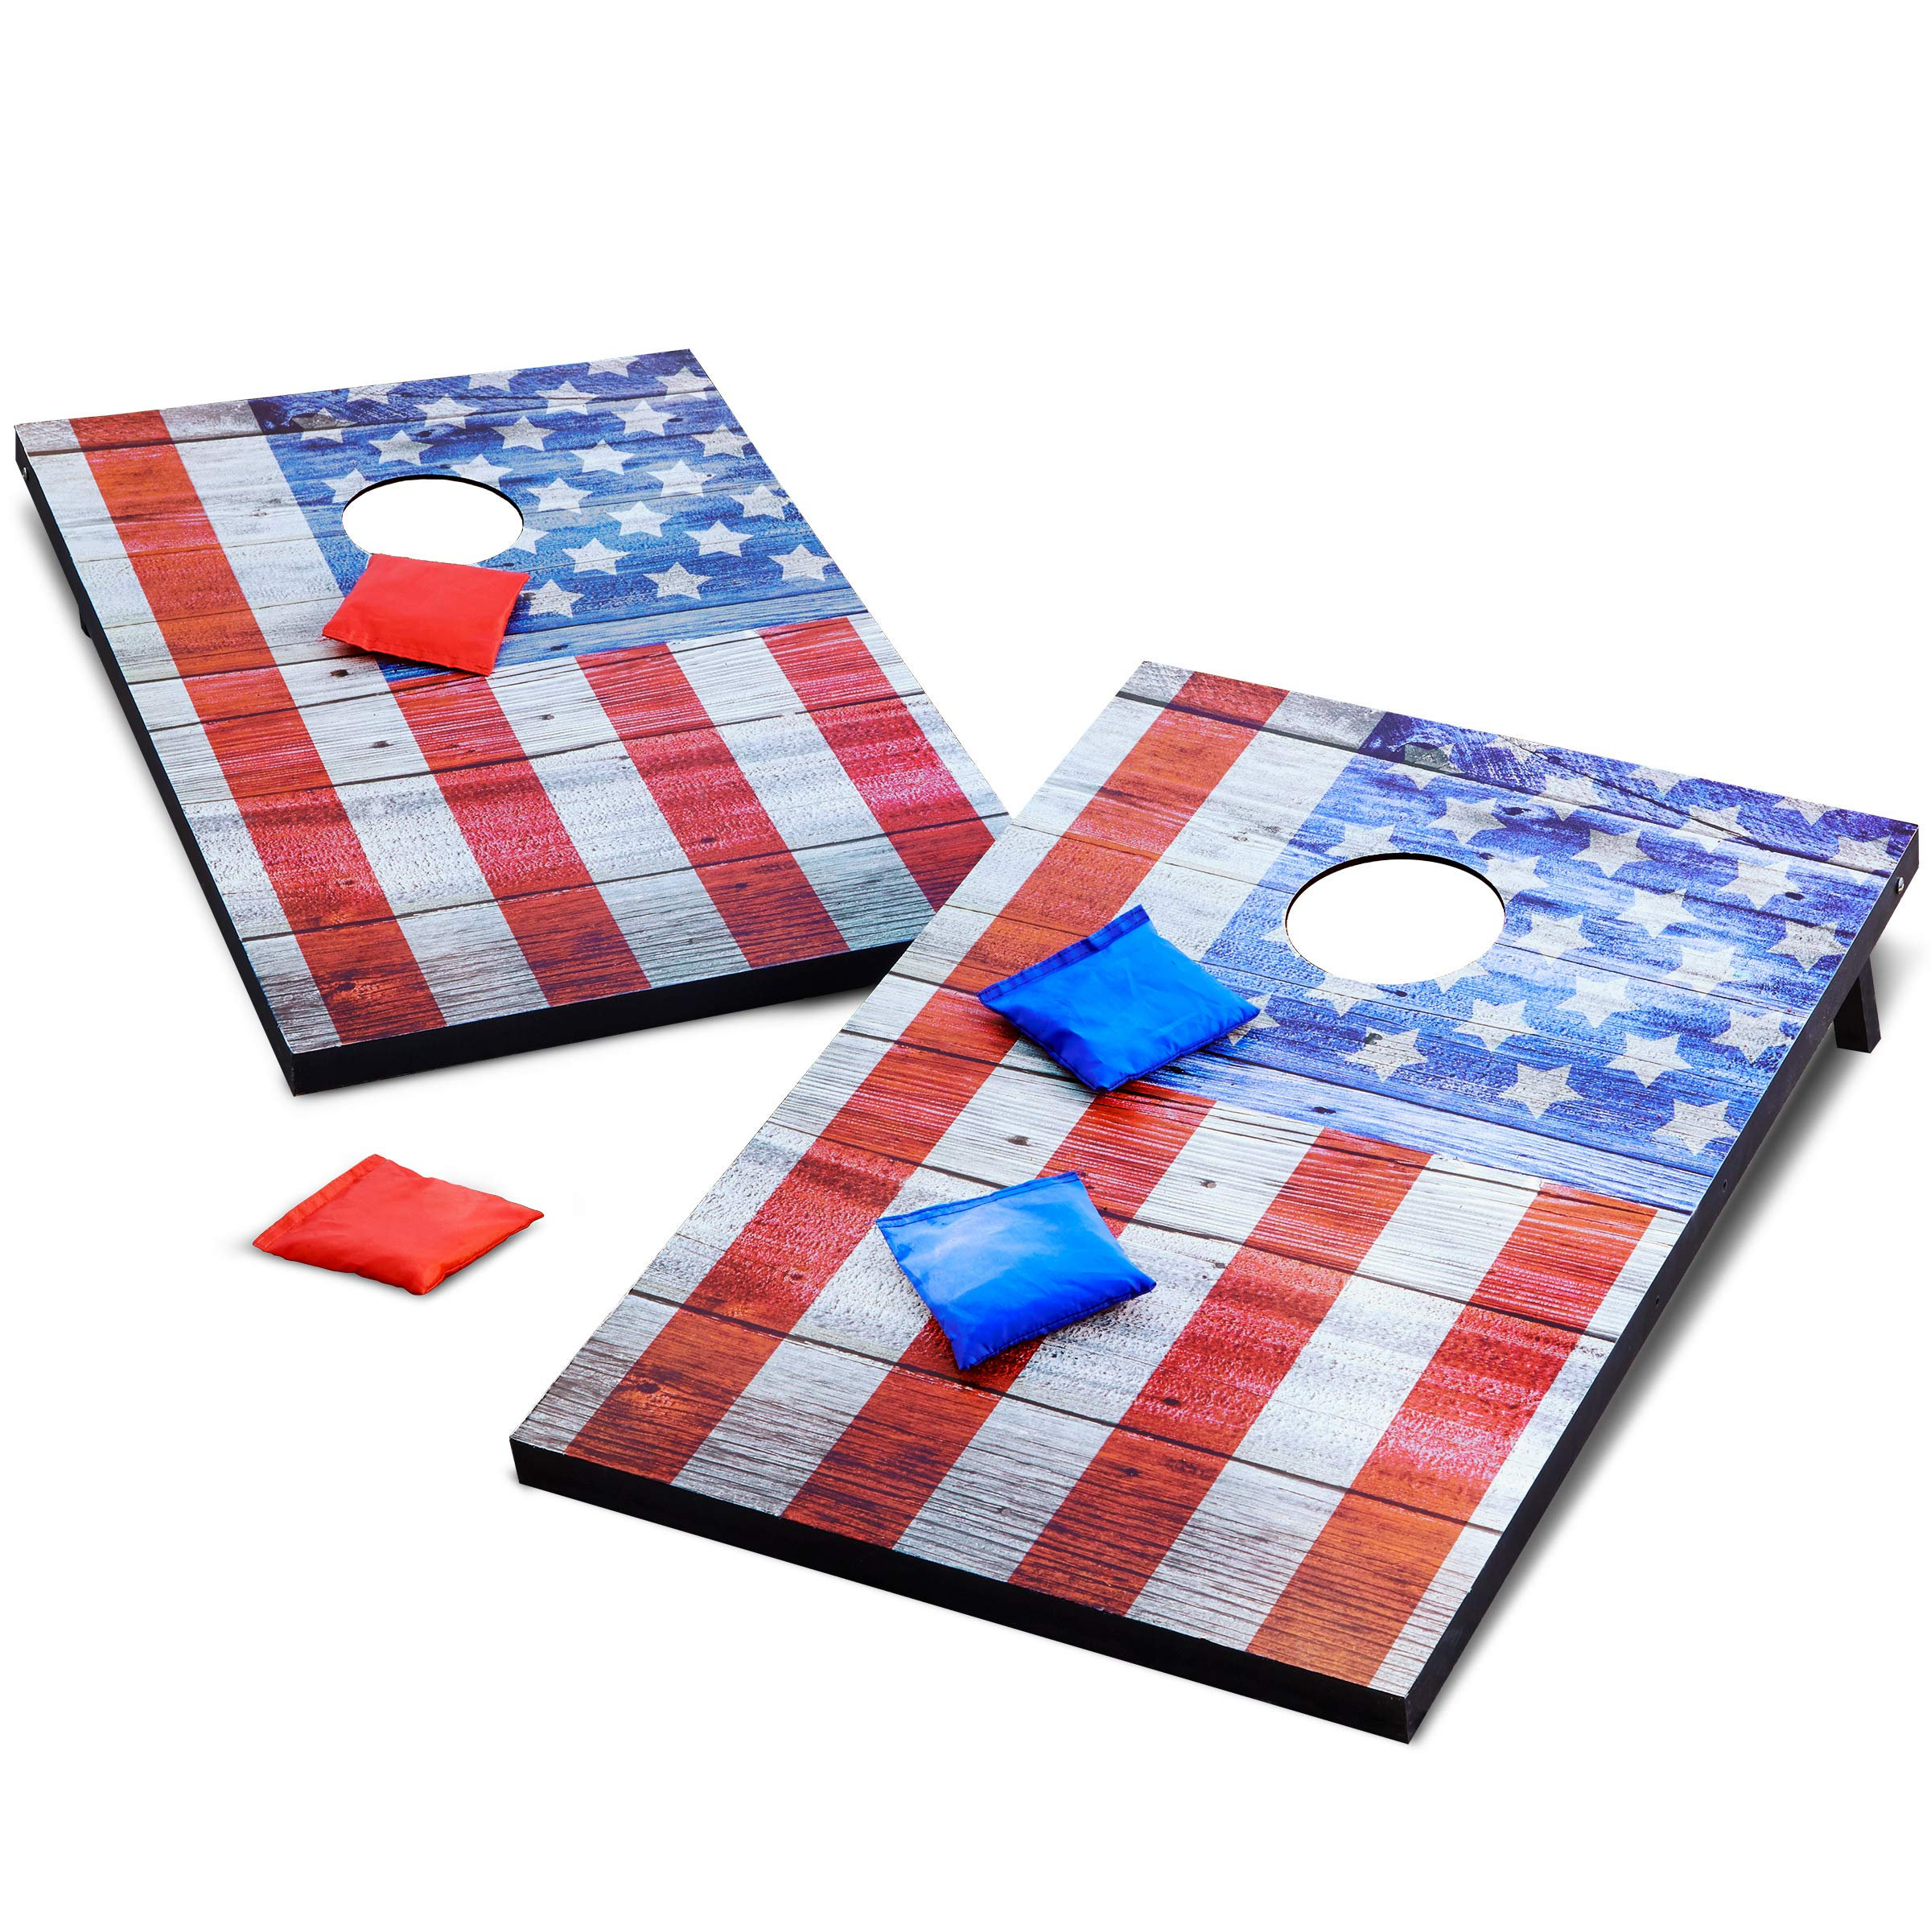 Refinery and Co. Vintage Americana Deluxe Bean Bag Toss Set, Complete Cornhole Game, Best Picnic & BBQ Target Sport, 2 Folding Targets, 8 Premium Bean Bags in 2 Colors, Easy Storage, Family Fun by Refinery and Co.